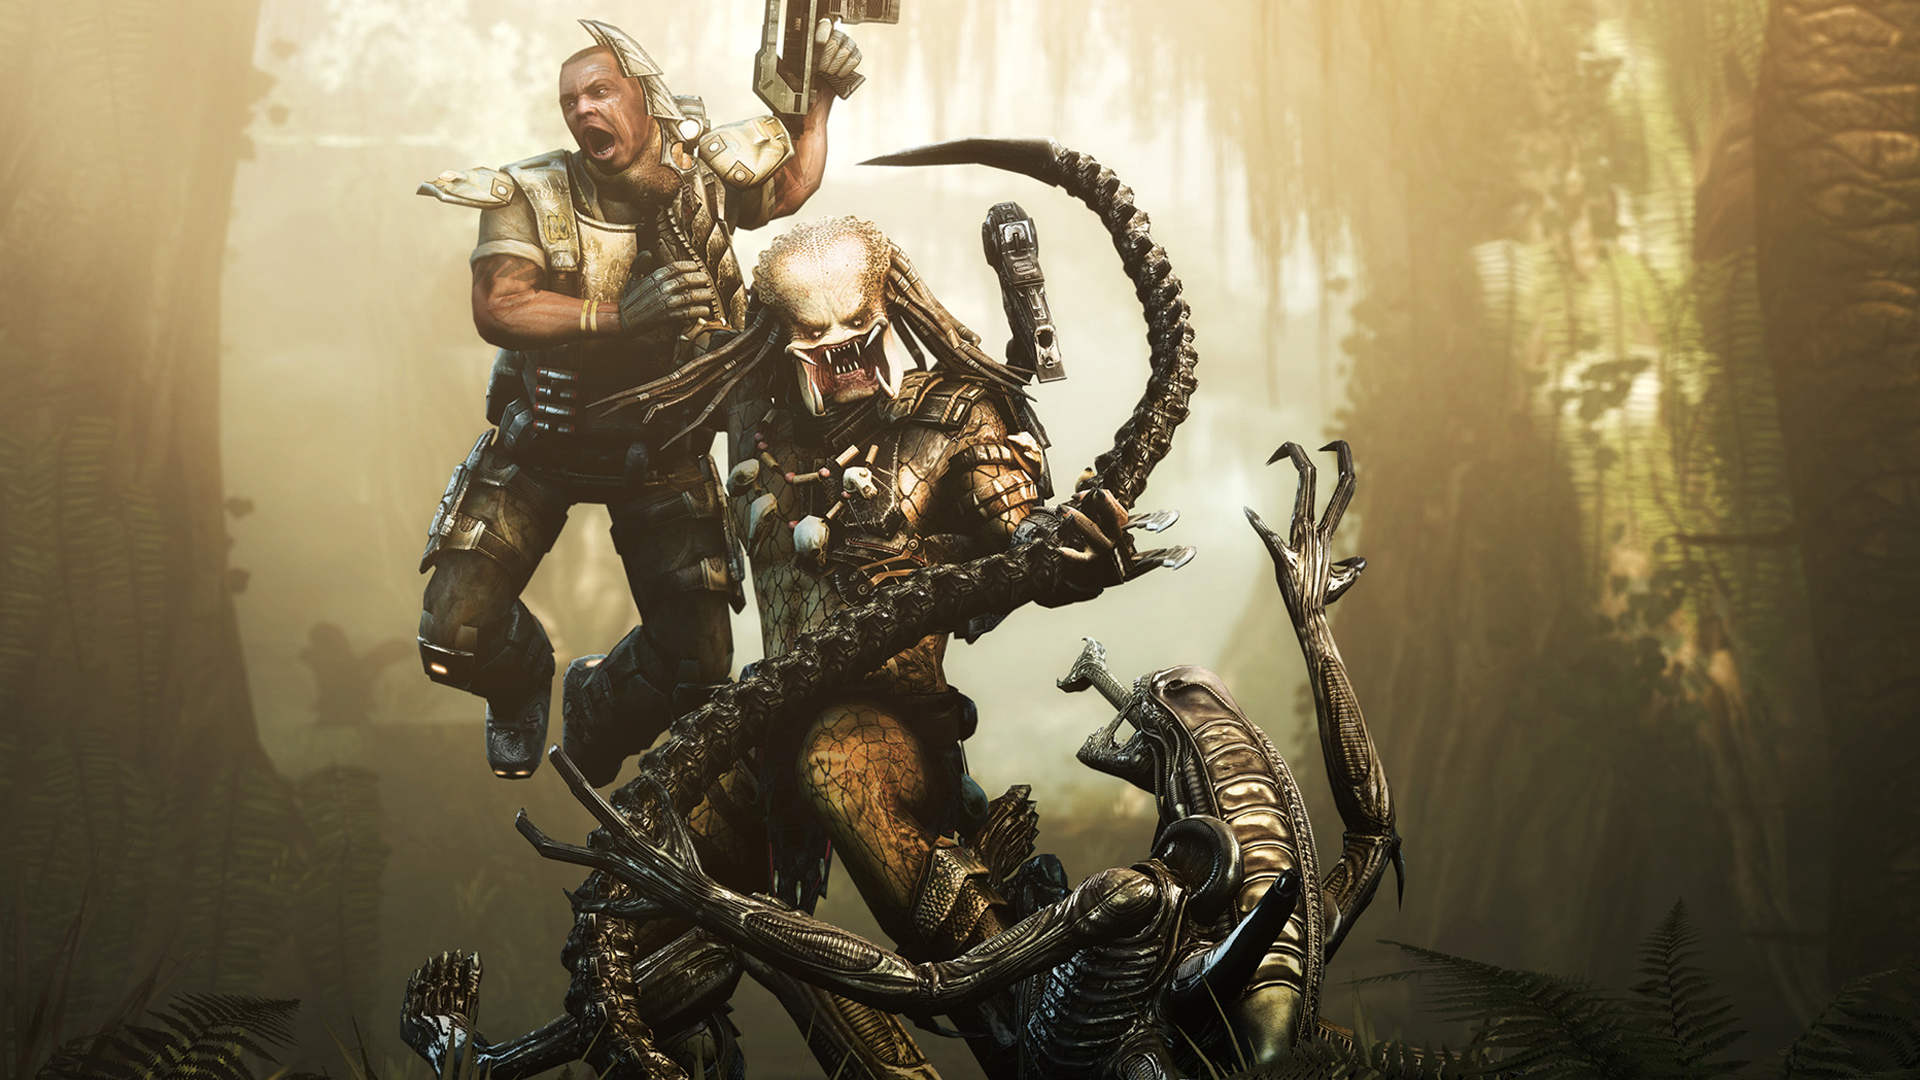 Aliens vs predator Movie HD Wallpaper